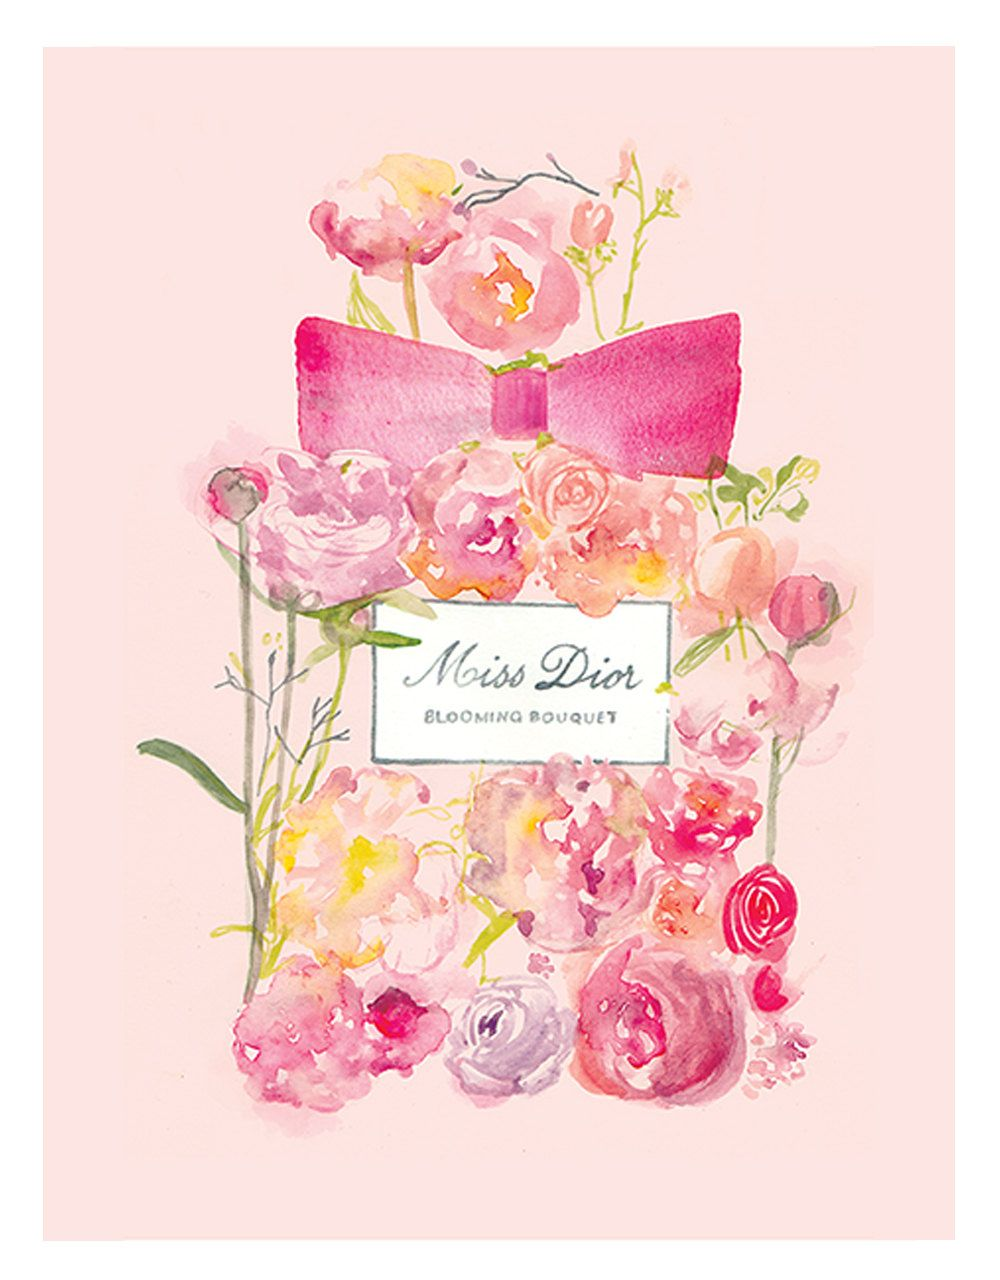 Miss dior blooming bouquet perfume watercolour illustration print miss dior illustration aquarelle de blooming bouquet parfum print par izmirmasajfo